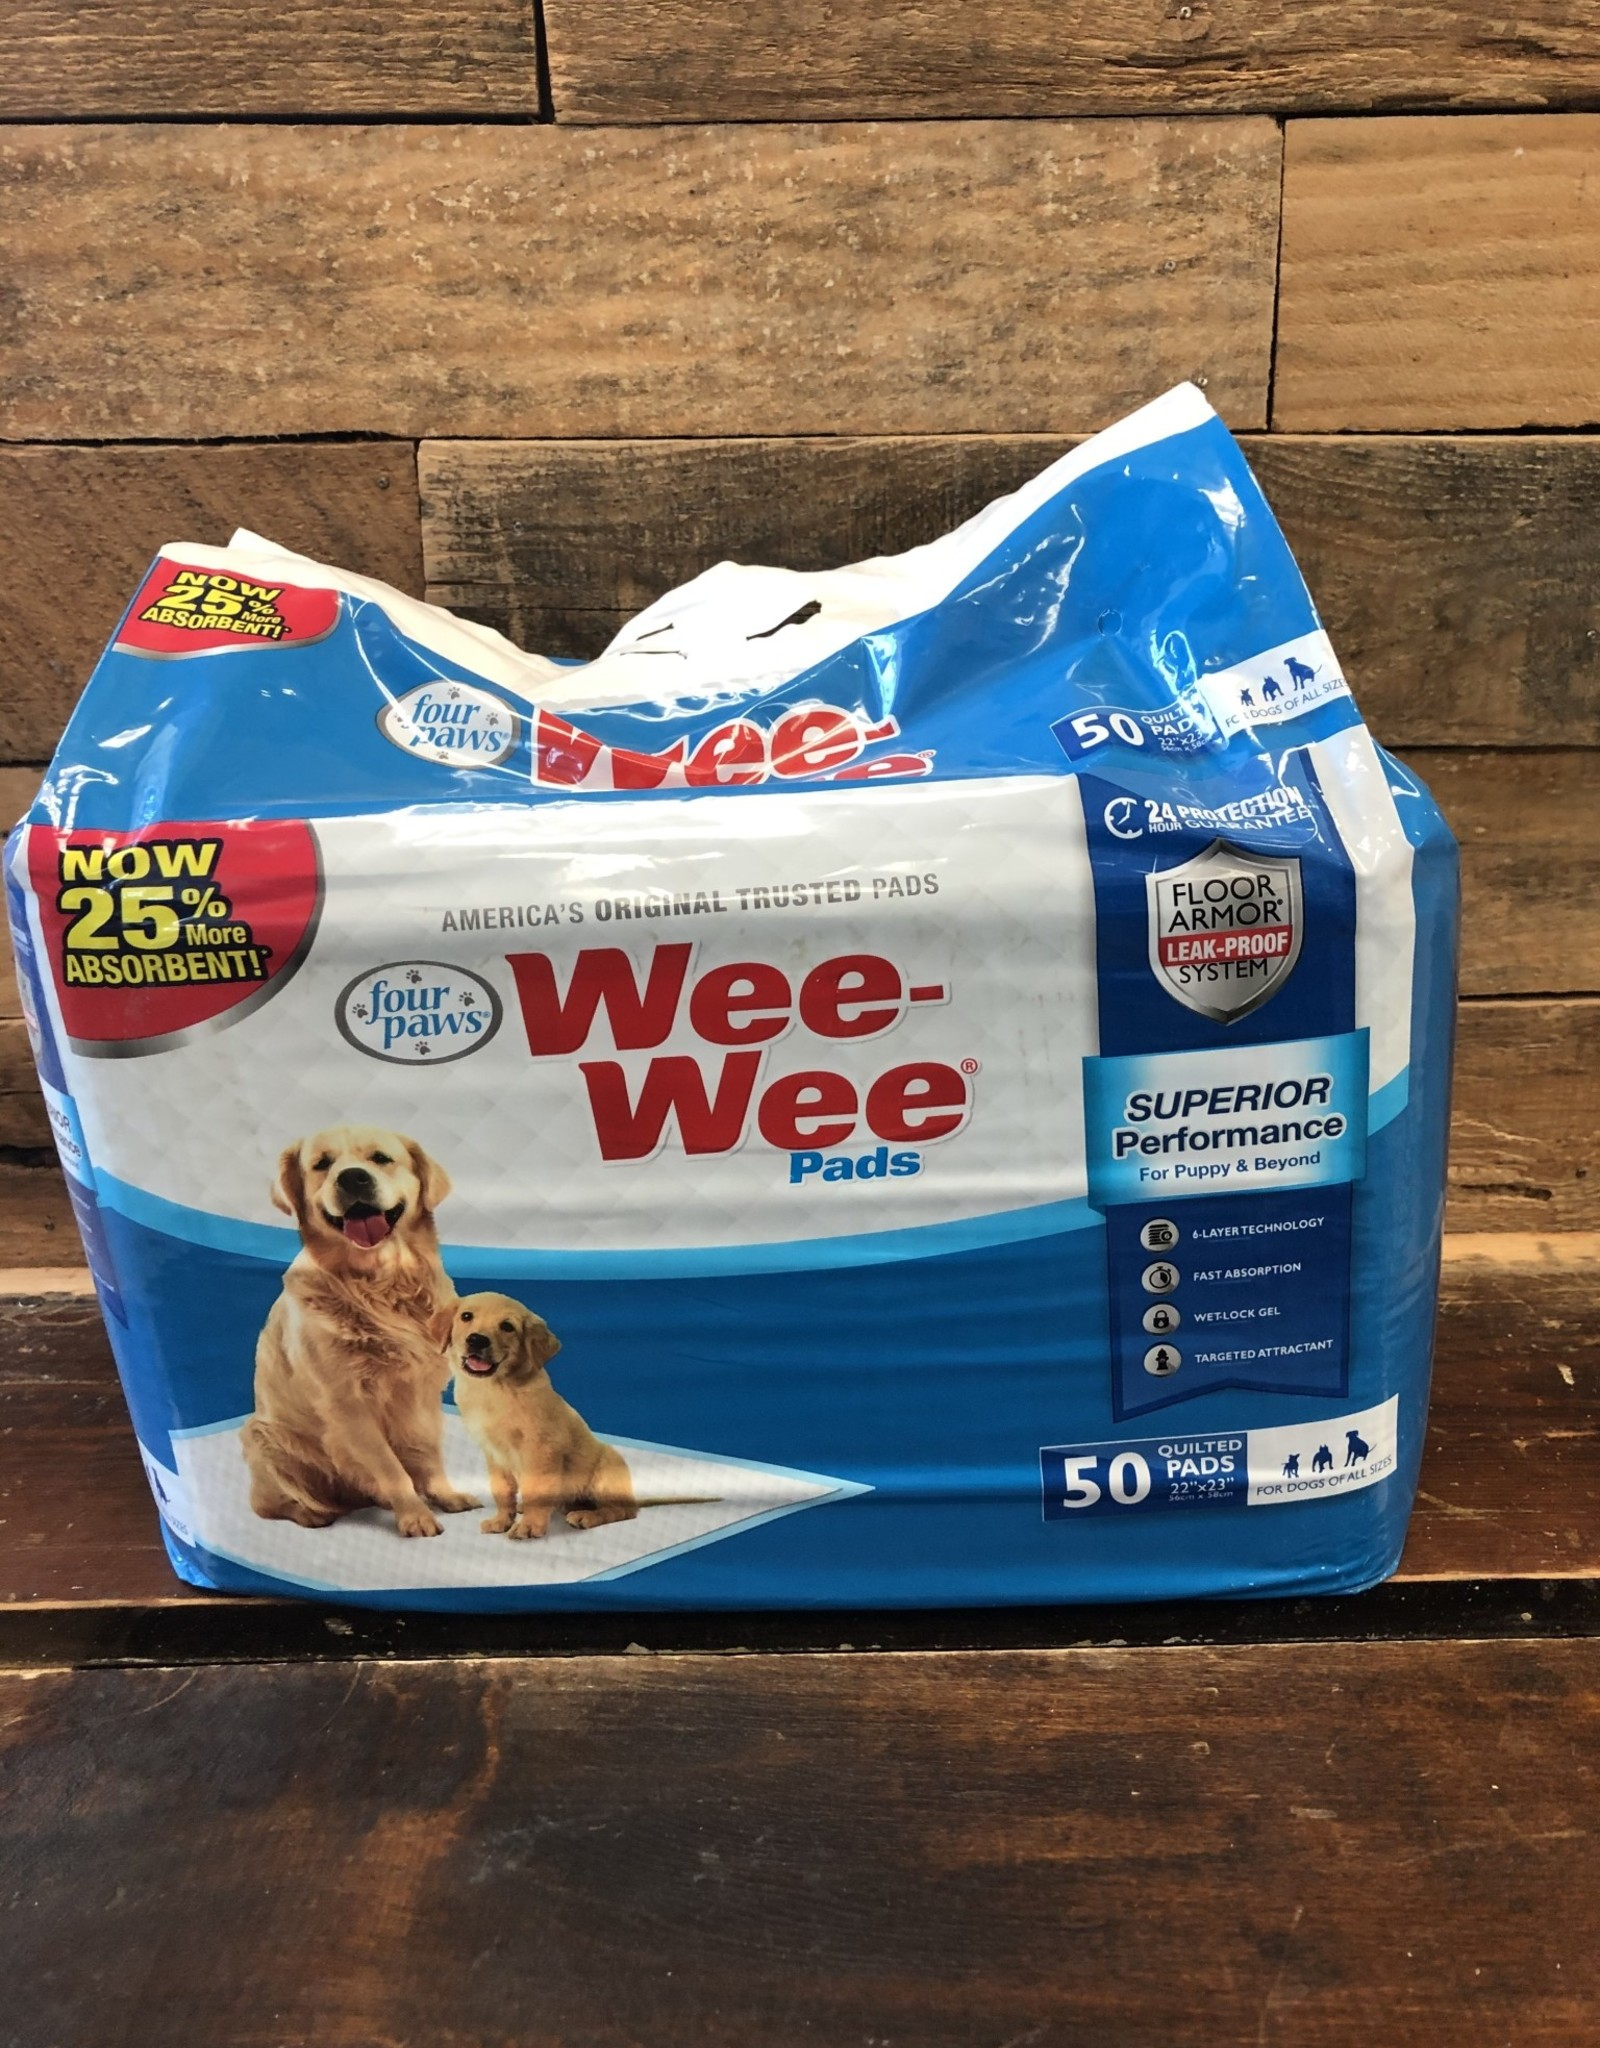 FOUR PAWS WEE-WEE PADS 50PK